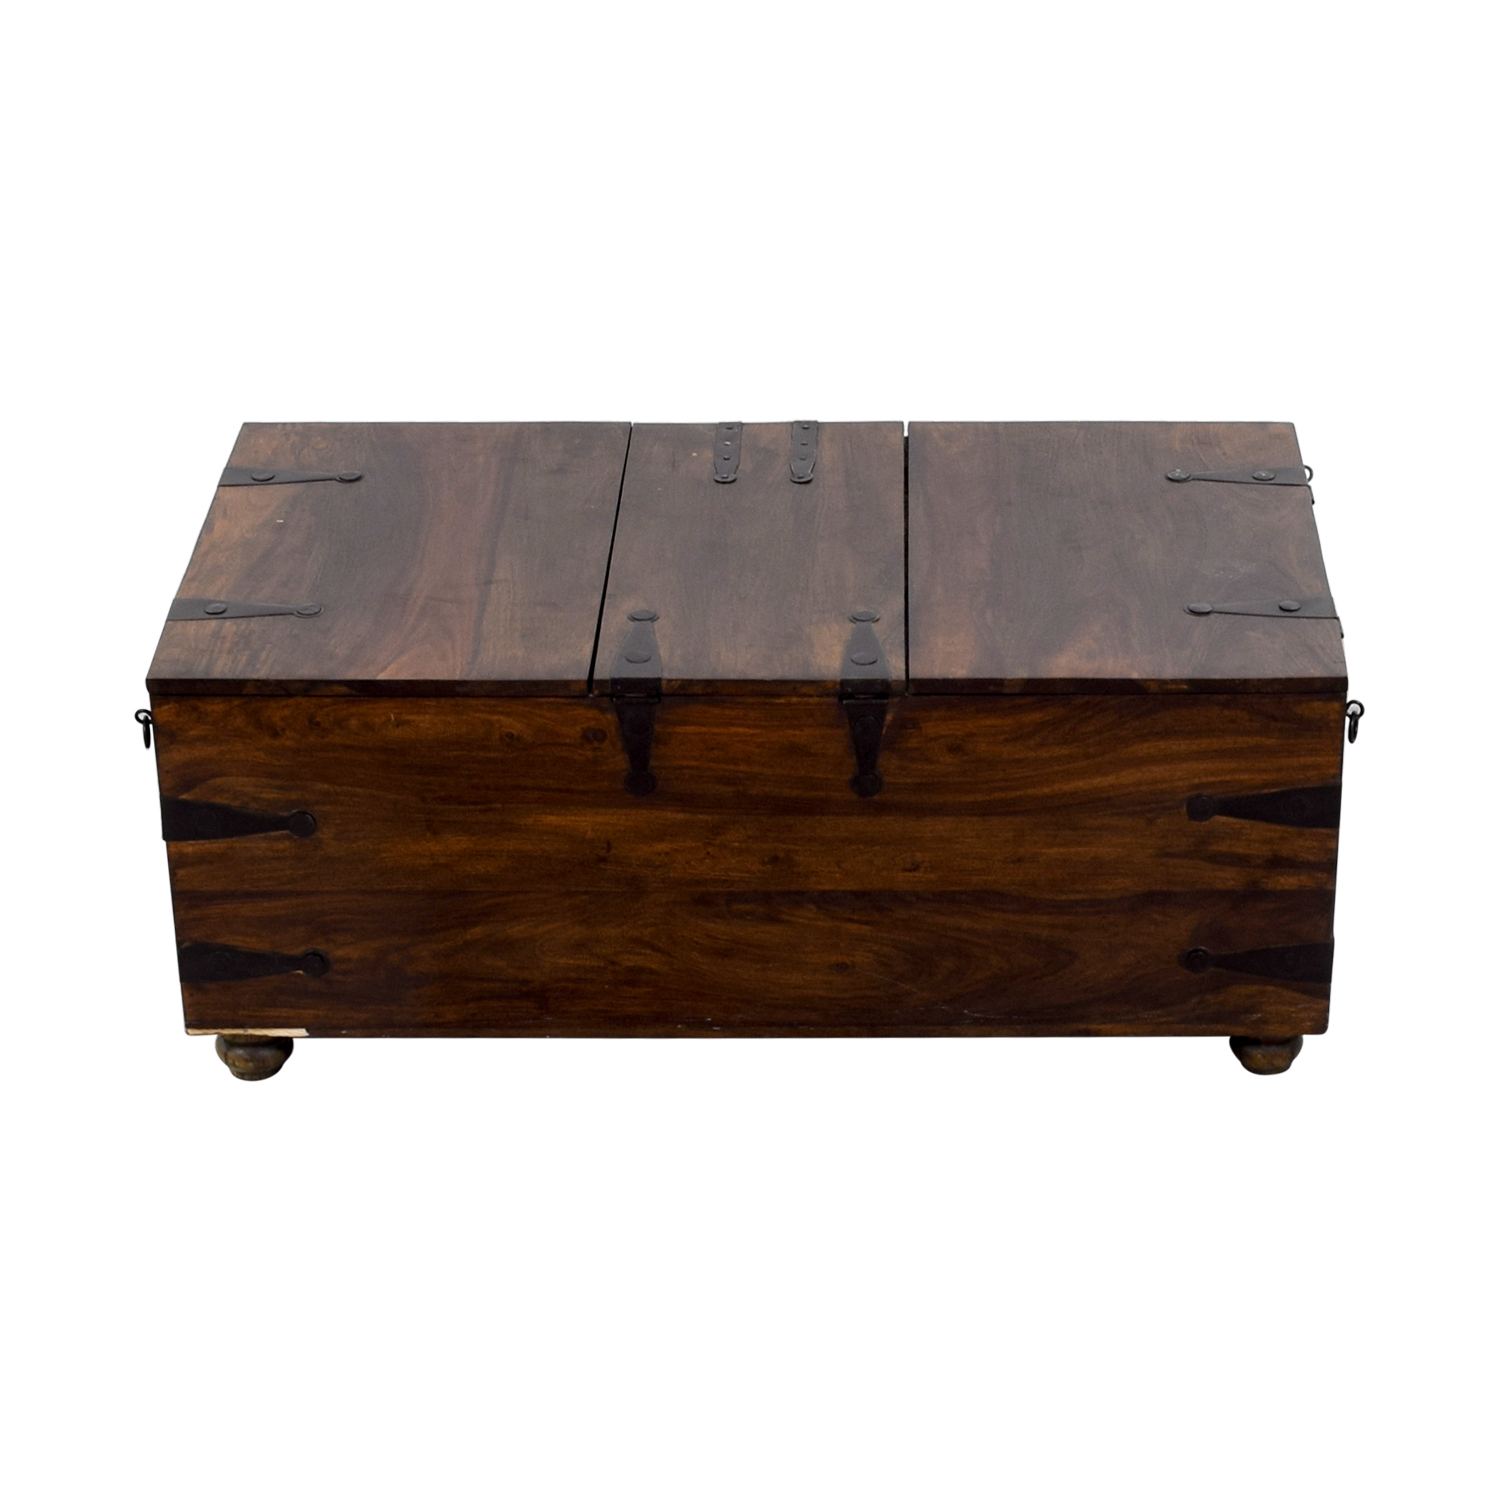 ... Buy Crate U0026 Barrel Trunk Coffee Table Crate U0026 Barrel ...